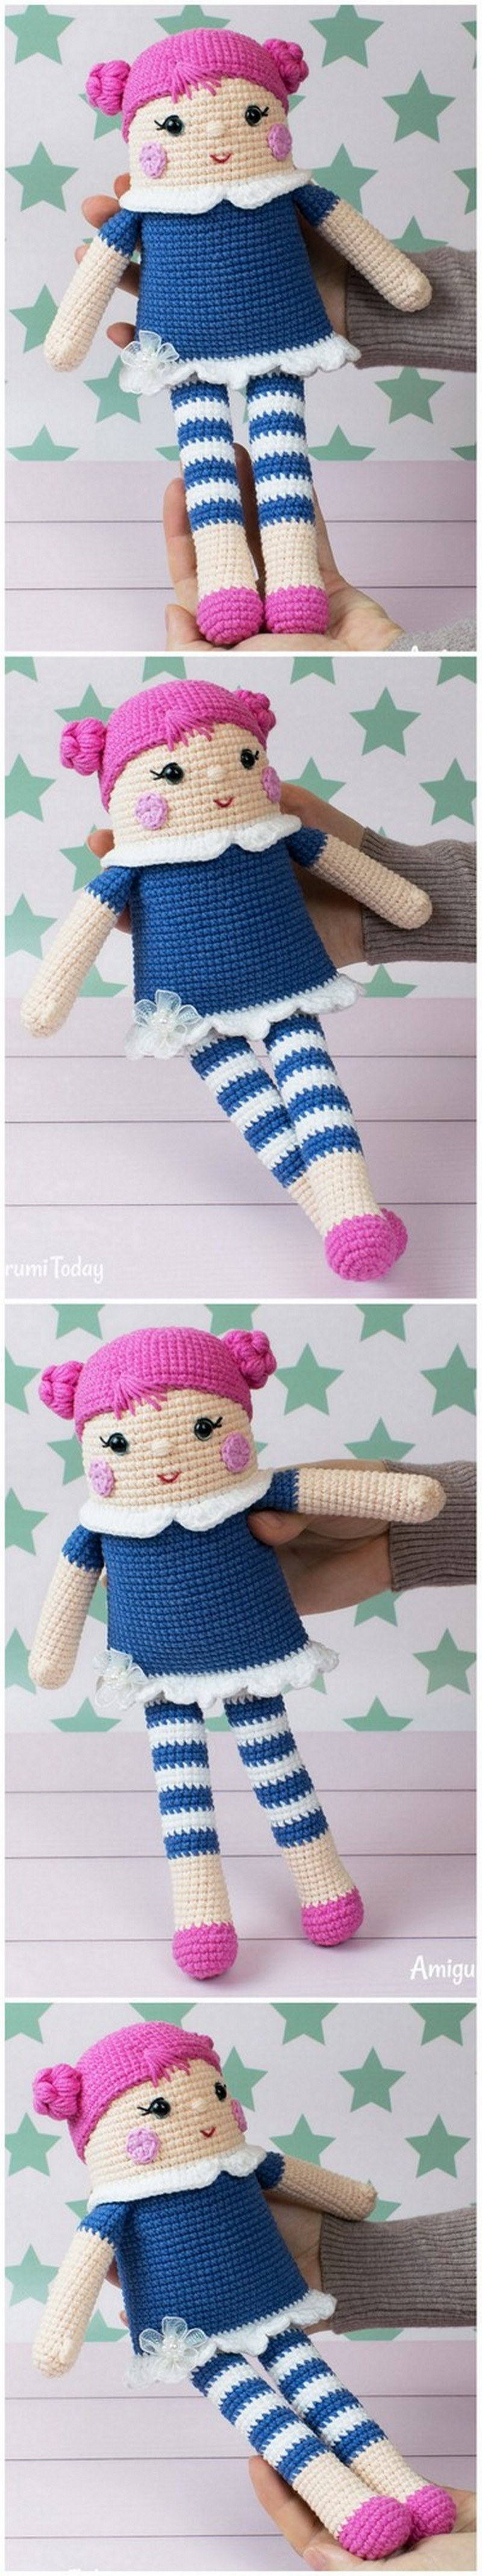 Crochet Amigurumi Doll Pattern (35)